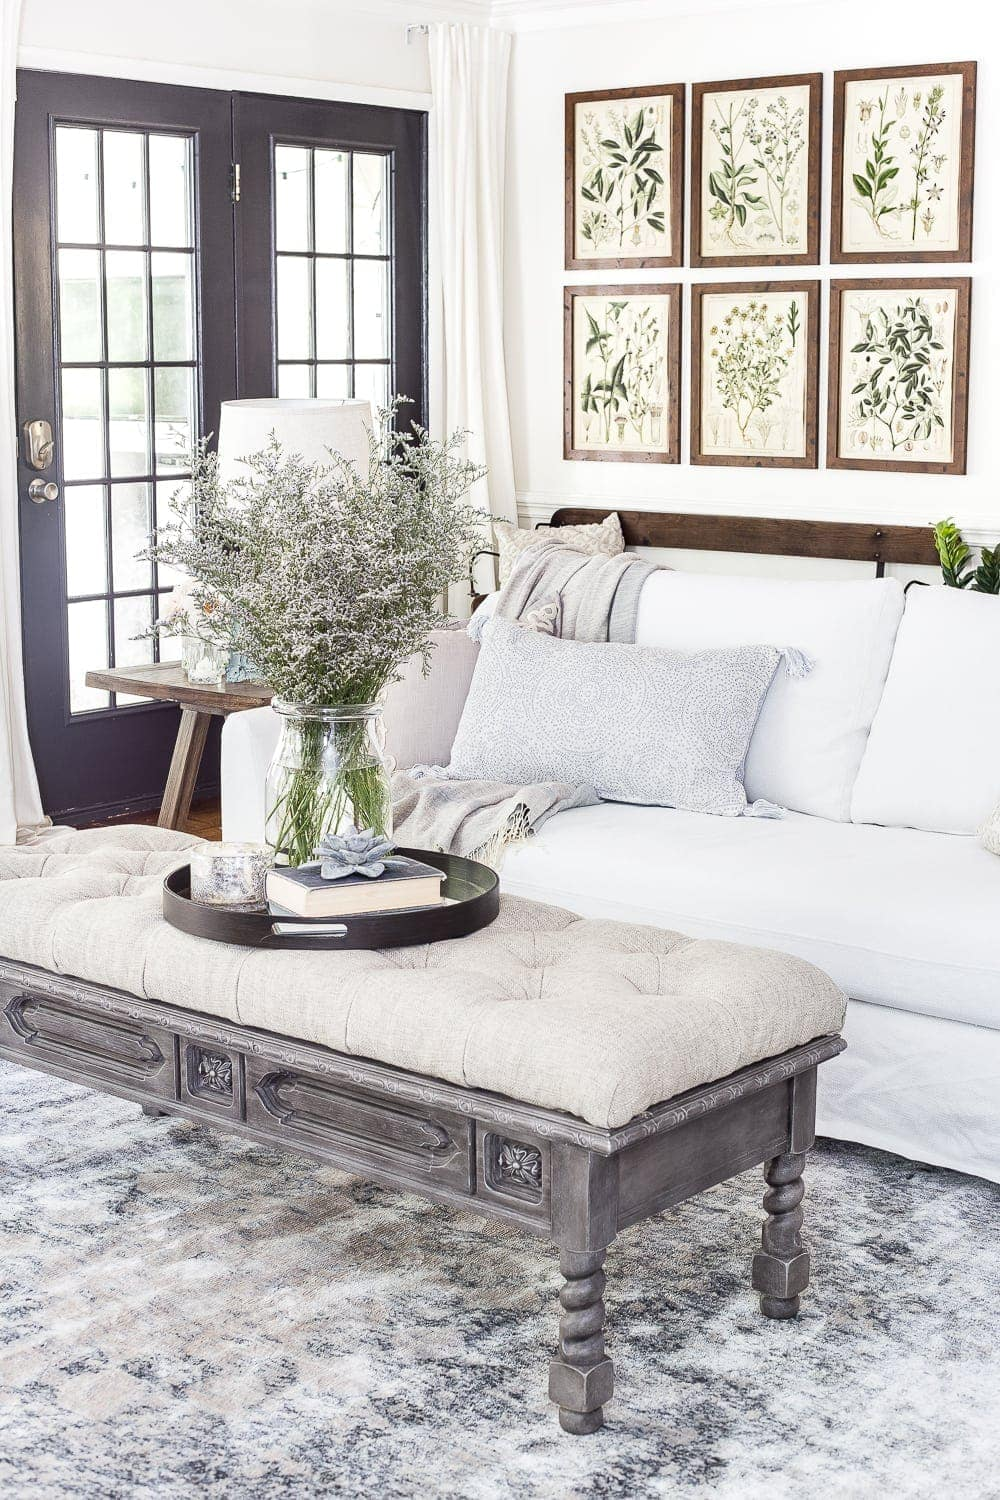 summer living room featuring summer botanical prints and blue/gray accents